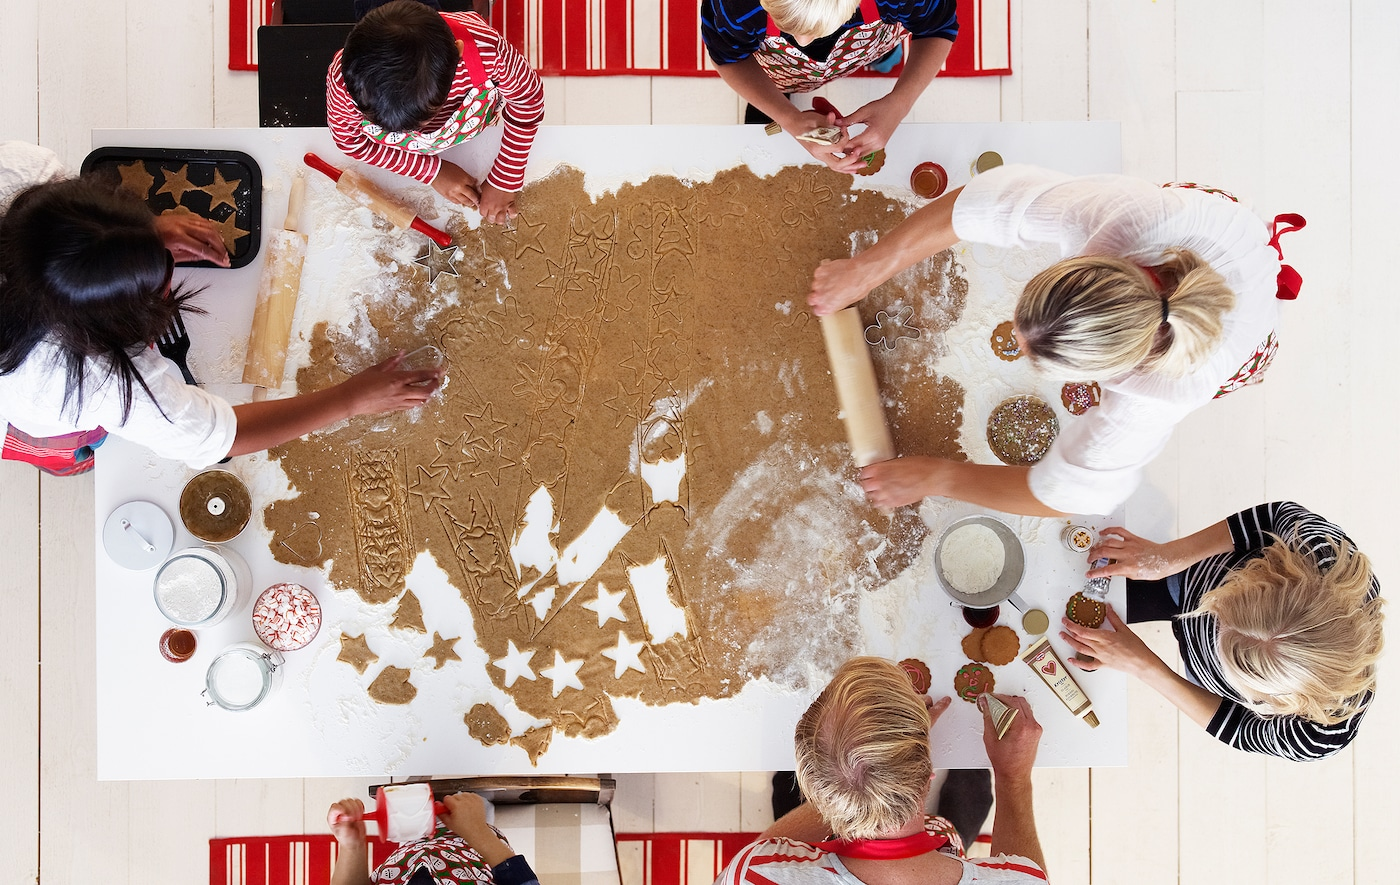 A group of children and adults amid gingerbread baking centred around a very large sheet of dough on a kitchen table.